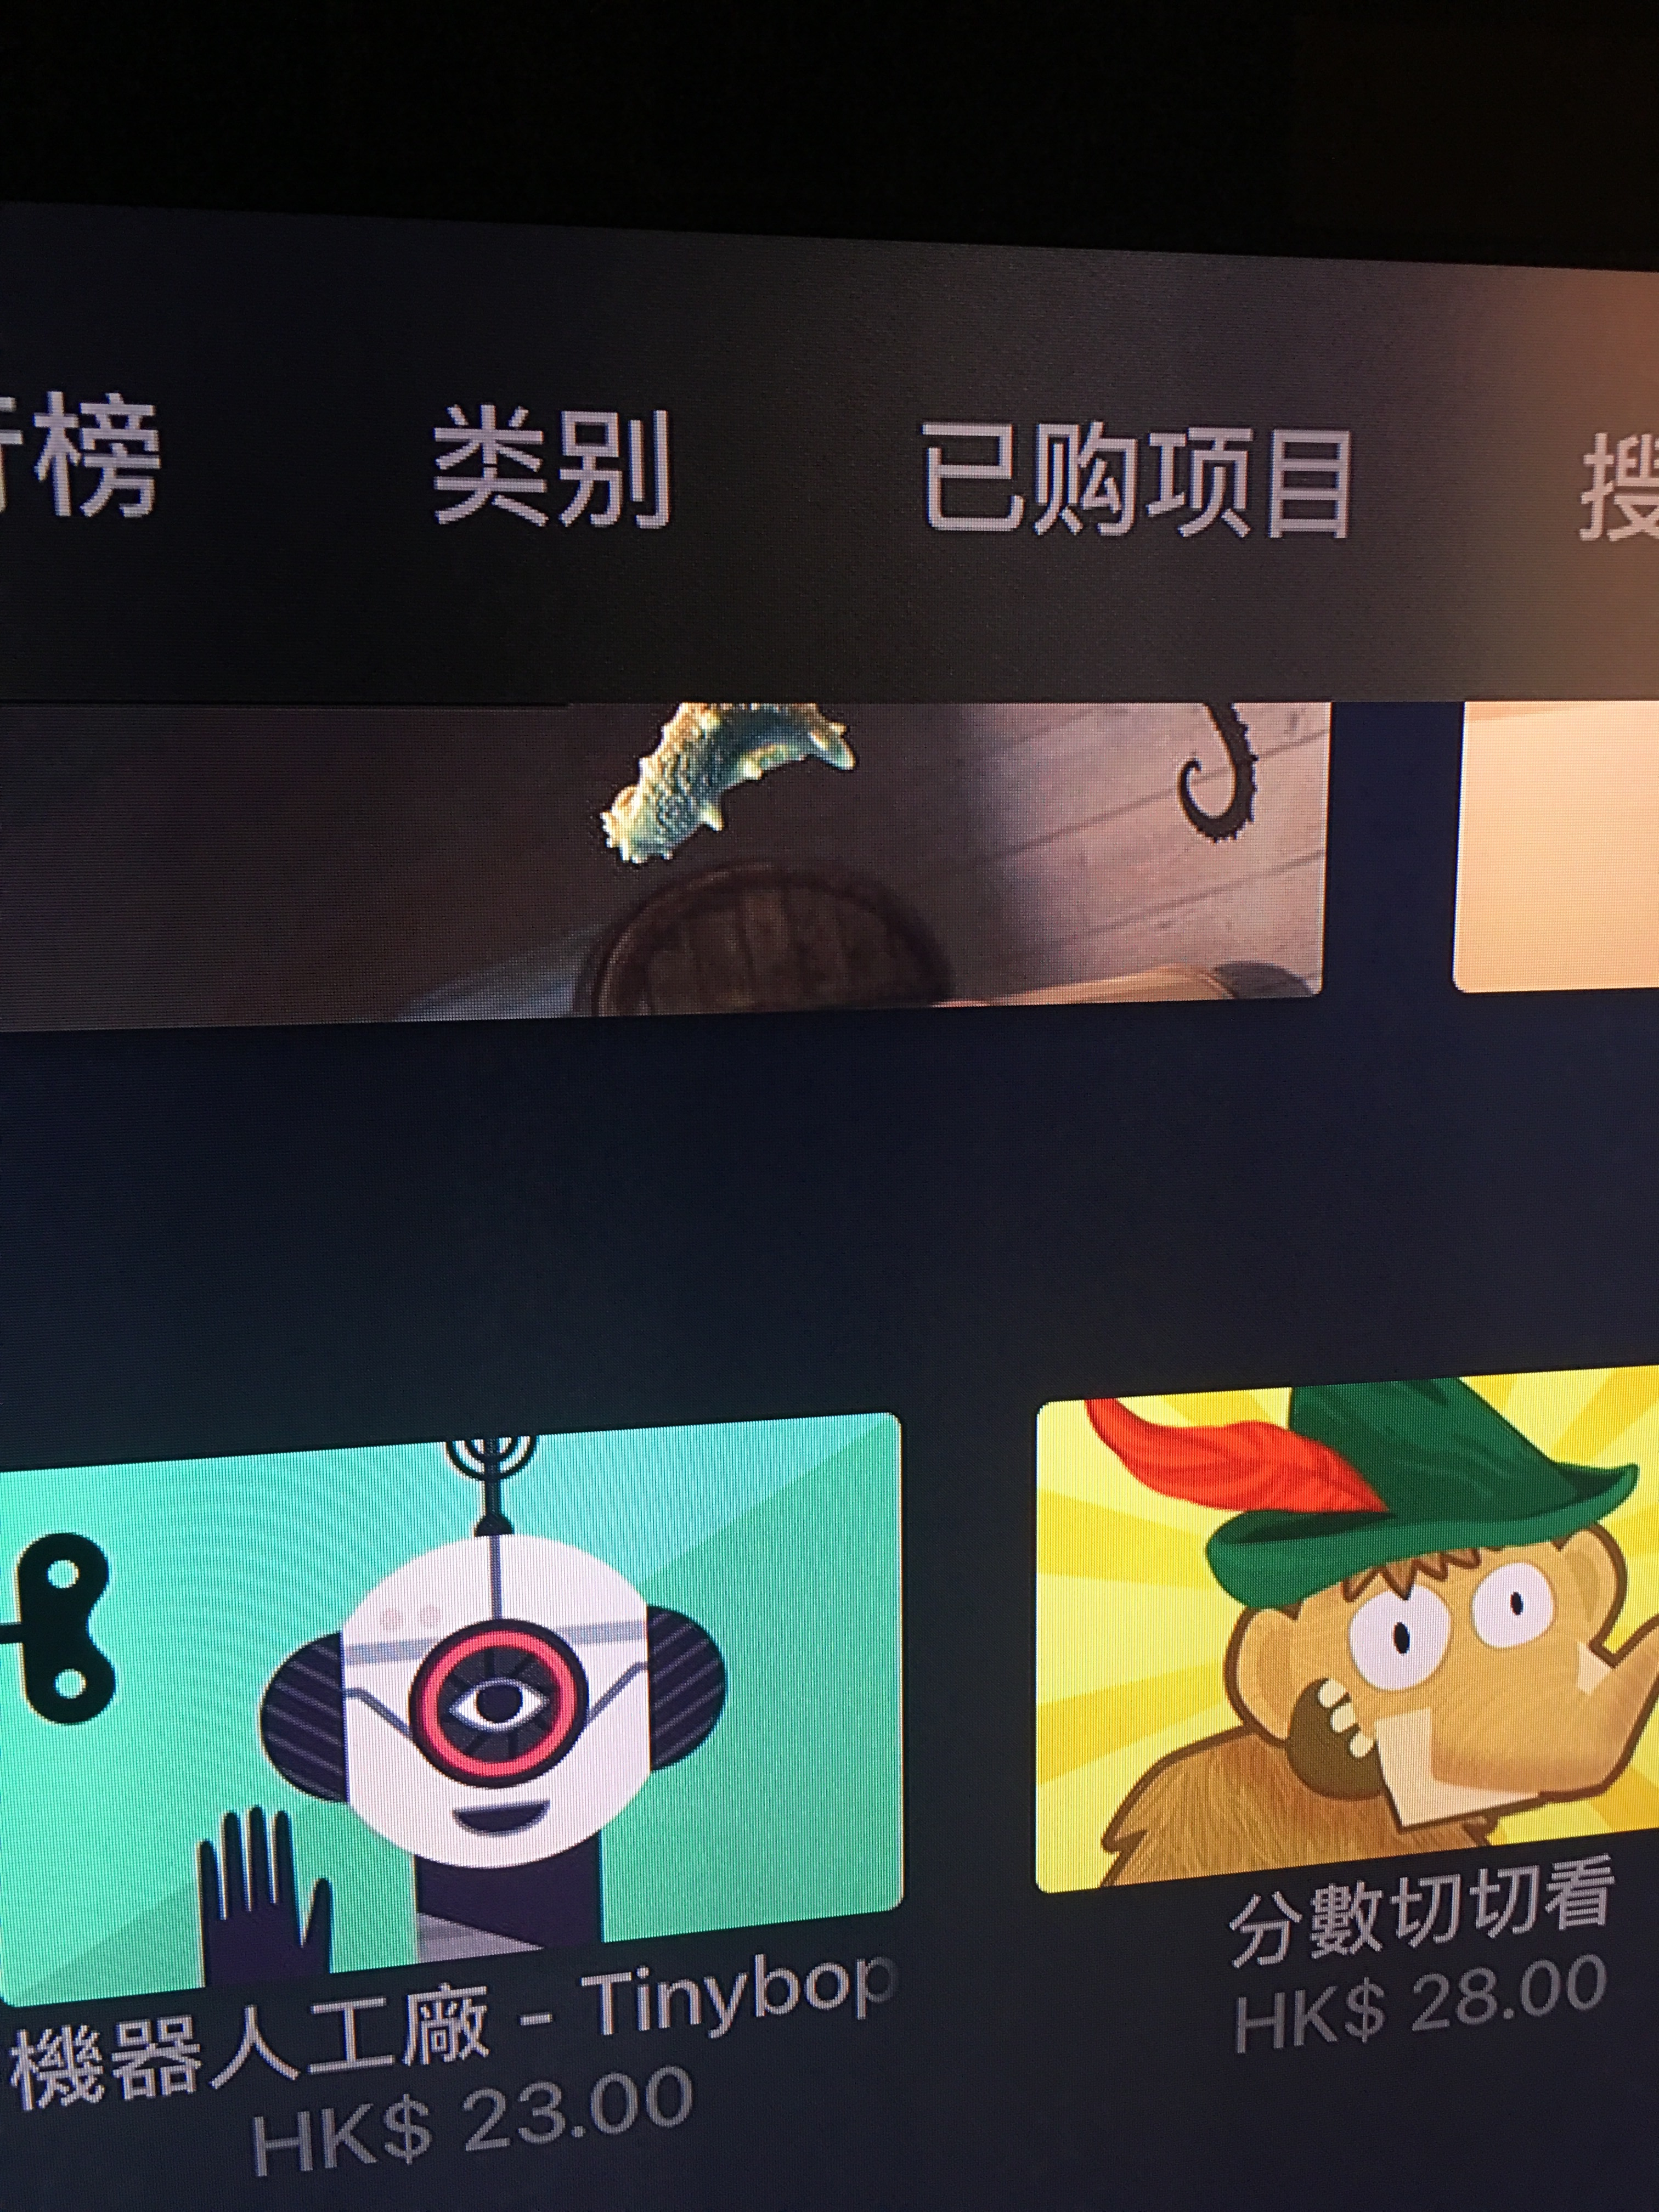 Apple TV, Tradition Chinese disappeared?! - Apple Community